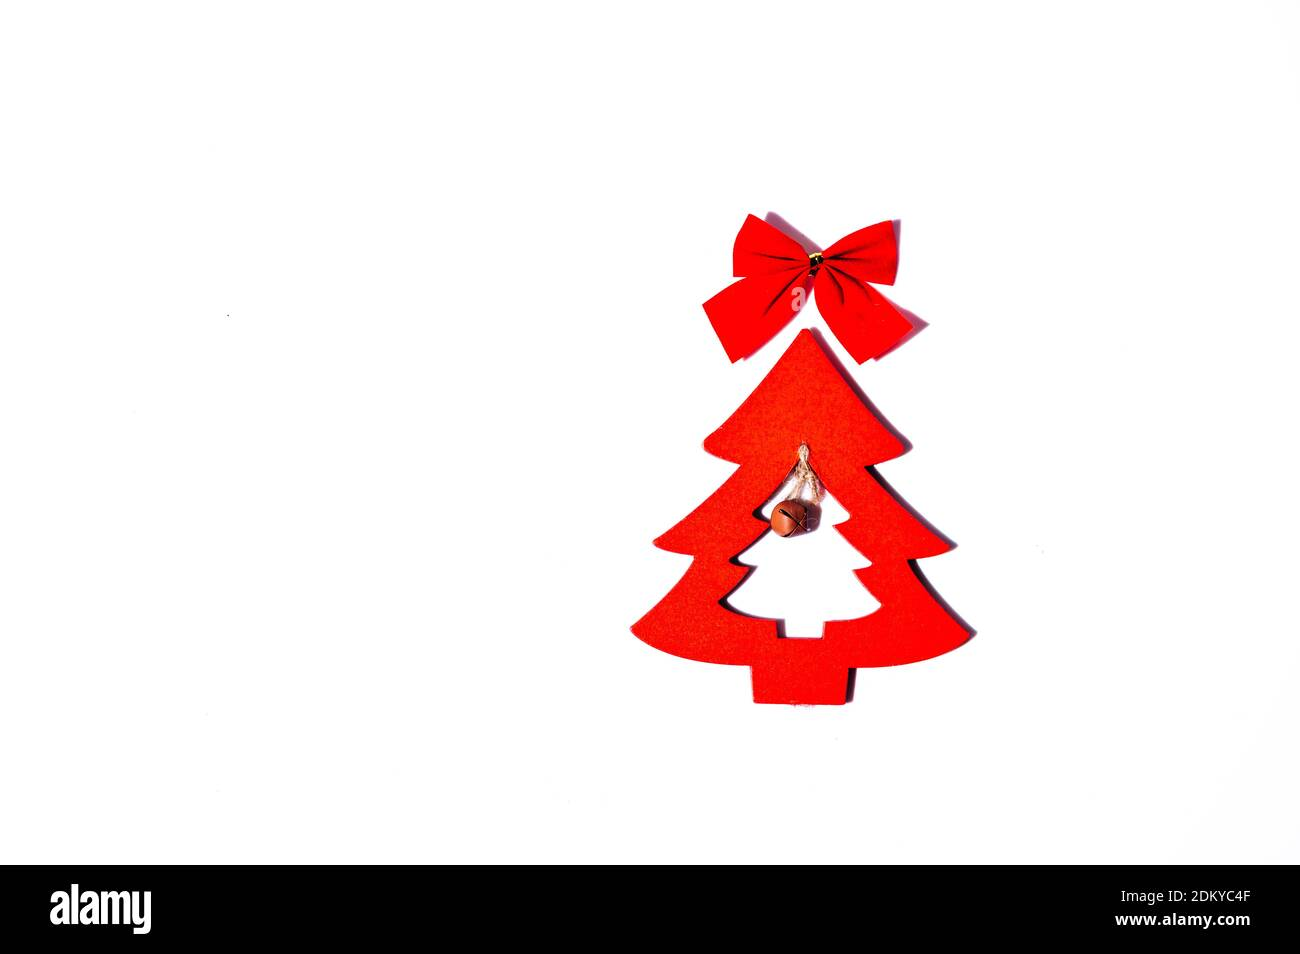 Red Wooden Christmas Tree Isolated On A White Background Minimalist Christmas Background Top View Copy Space Christmas Card Design Stock Photo Alamy